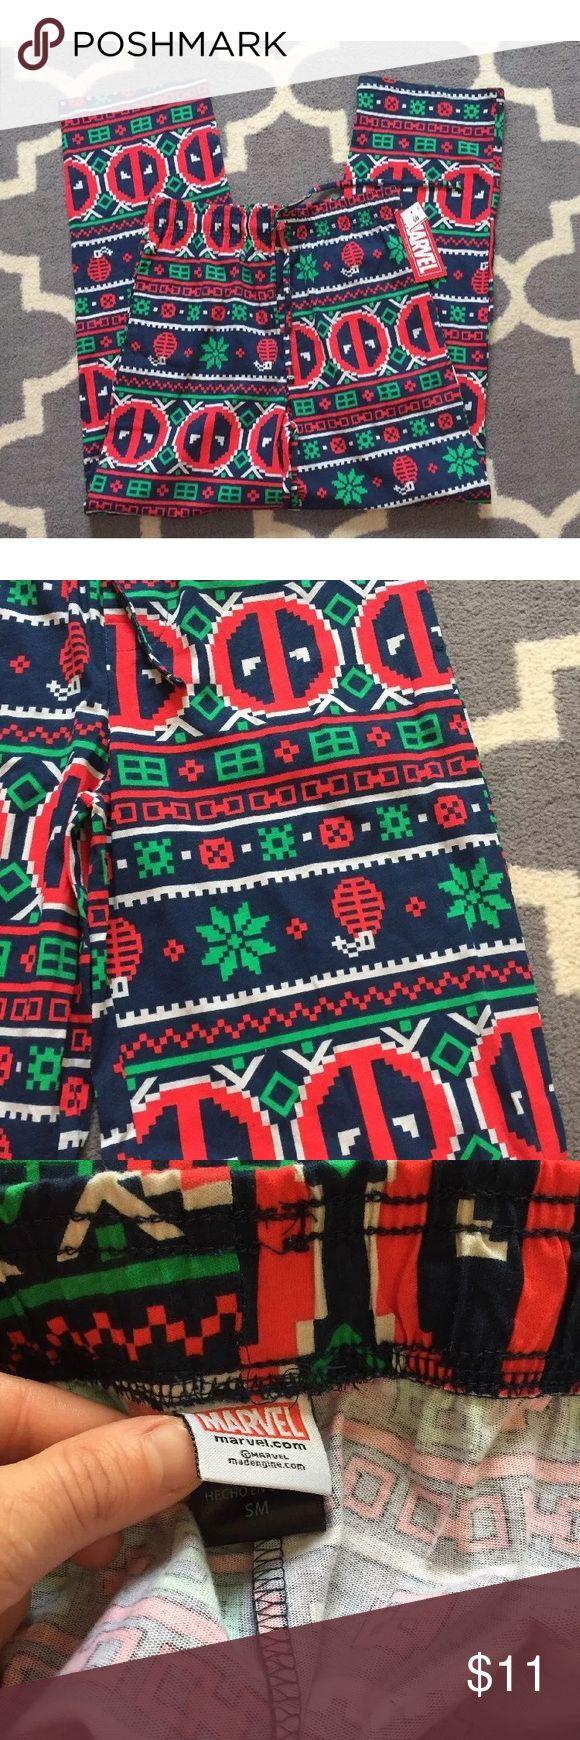 """Marvel Deadpool men's NWT Christmas pjs S New with tag men's Christmas pajama pant bottoms with straight leg, elastic waist in size small. Marvel comics themed - Deadpool. Inseam is 29"""" - loose fit and 100% cotton material. Marvel Pants"""